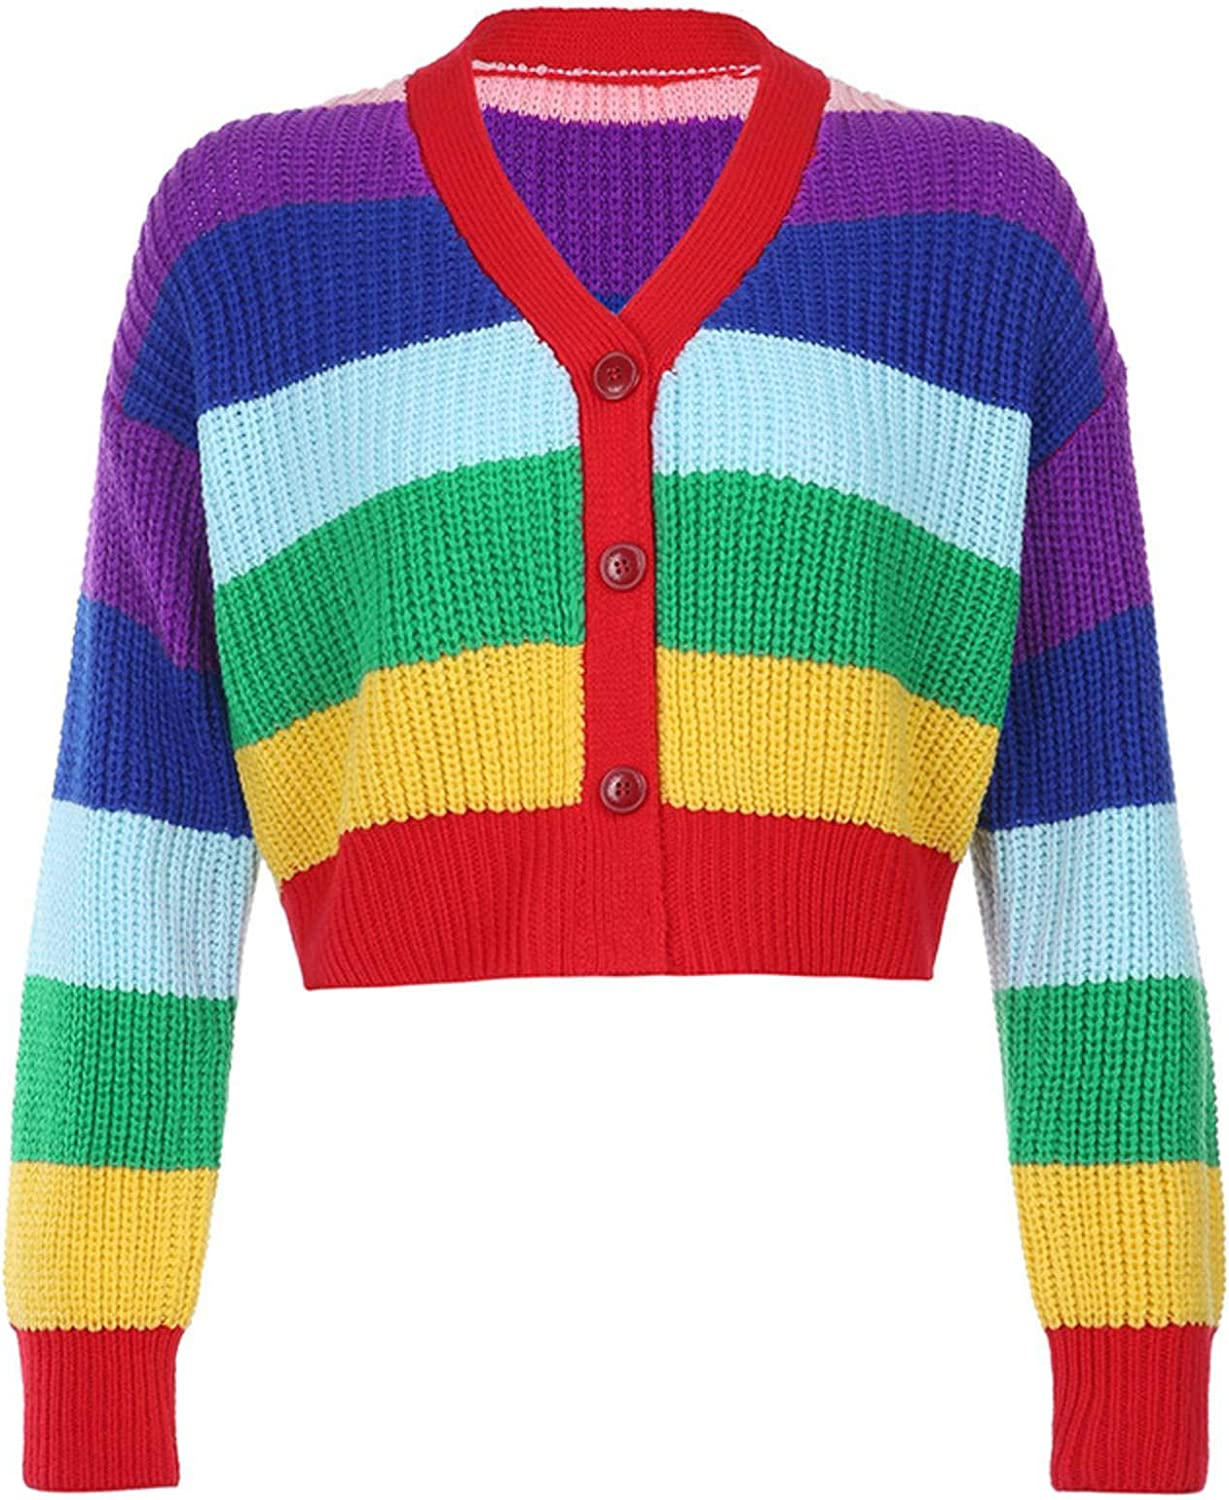 NC Women's Ins European and American Style Y2k Multicolored Cardigan Buttoned Knitted Jacket Women's Casual Sweater Winter